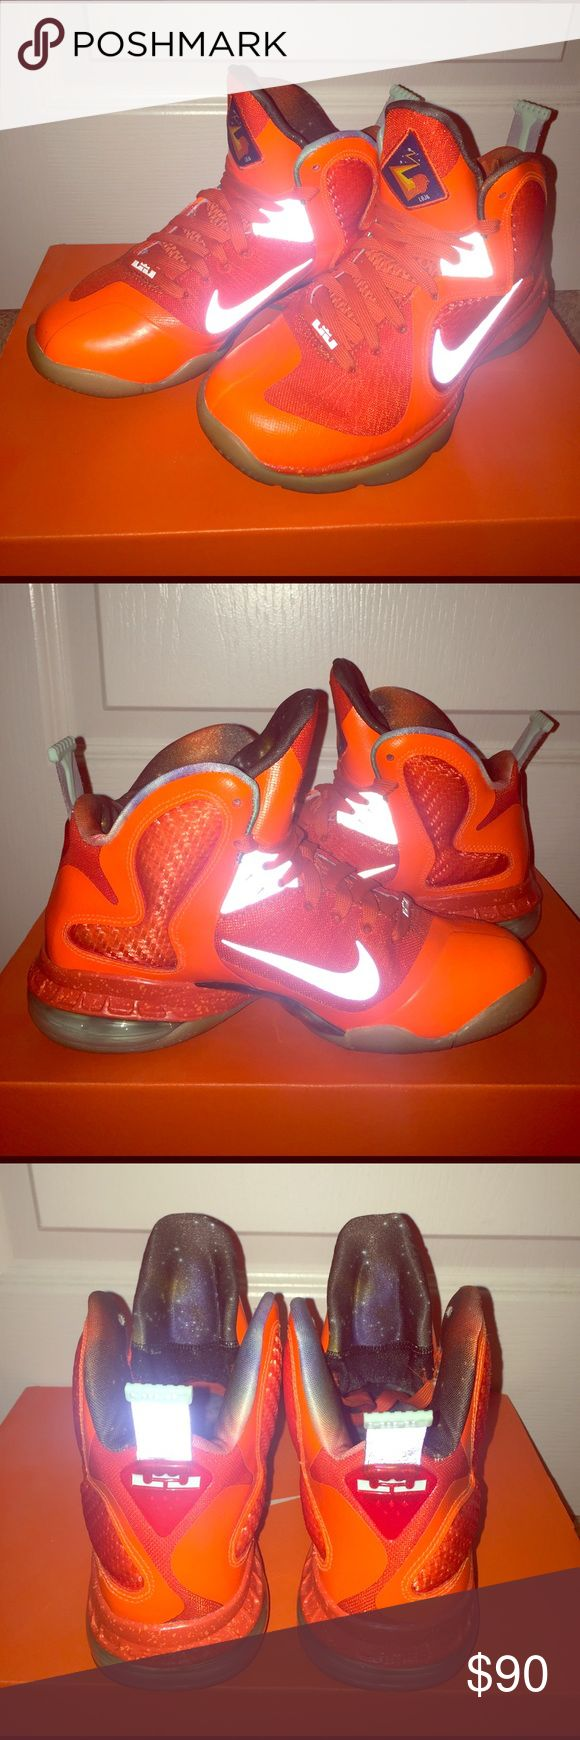 Lebron 9, Galaxy's Slightly used Galaxy Lebrons, 7.5/10 aesthetic appeal with minor creases, kid size 3.5Y Nike Shoes Sneakers